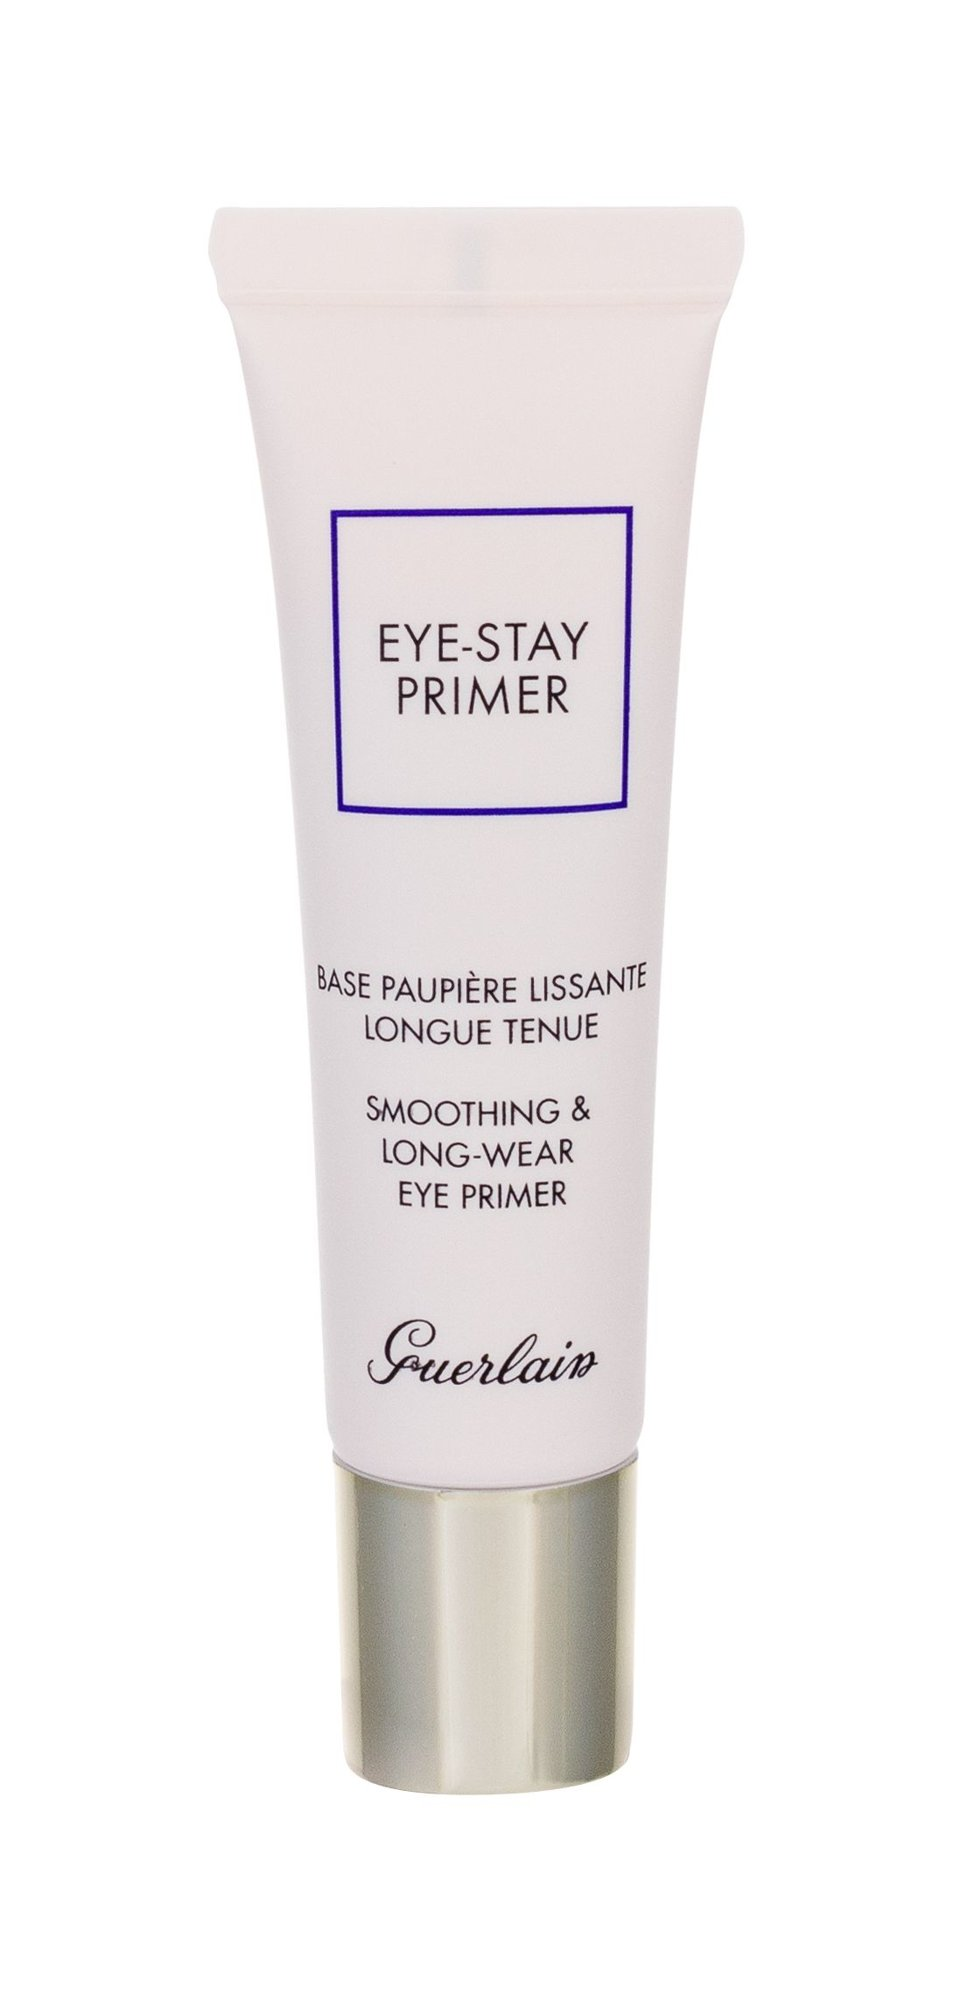 Guerlain Eye-Stay Primer Eyeshadow Base 12ml